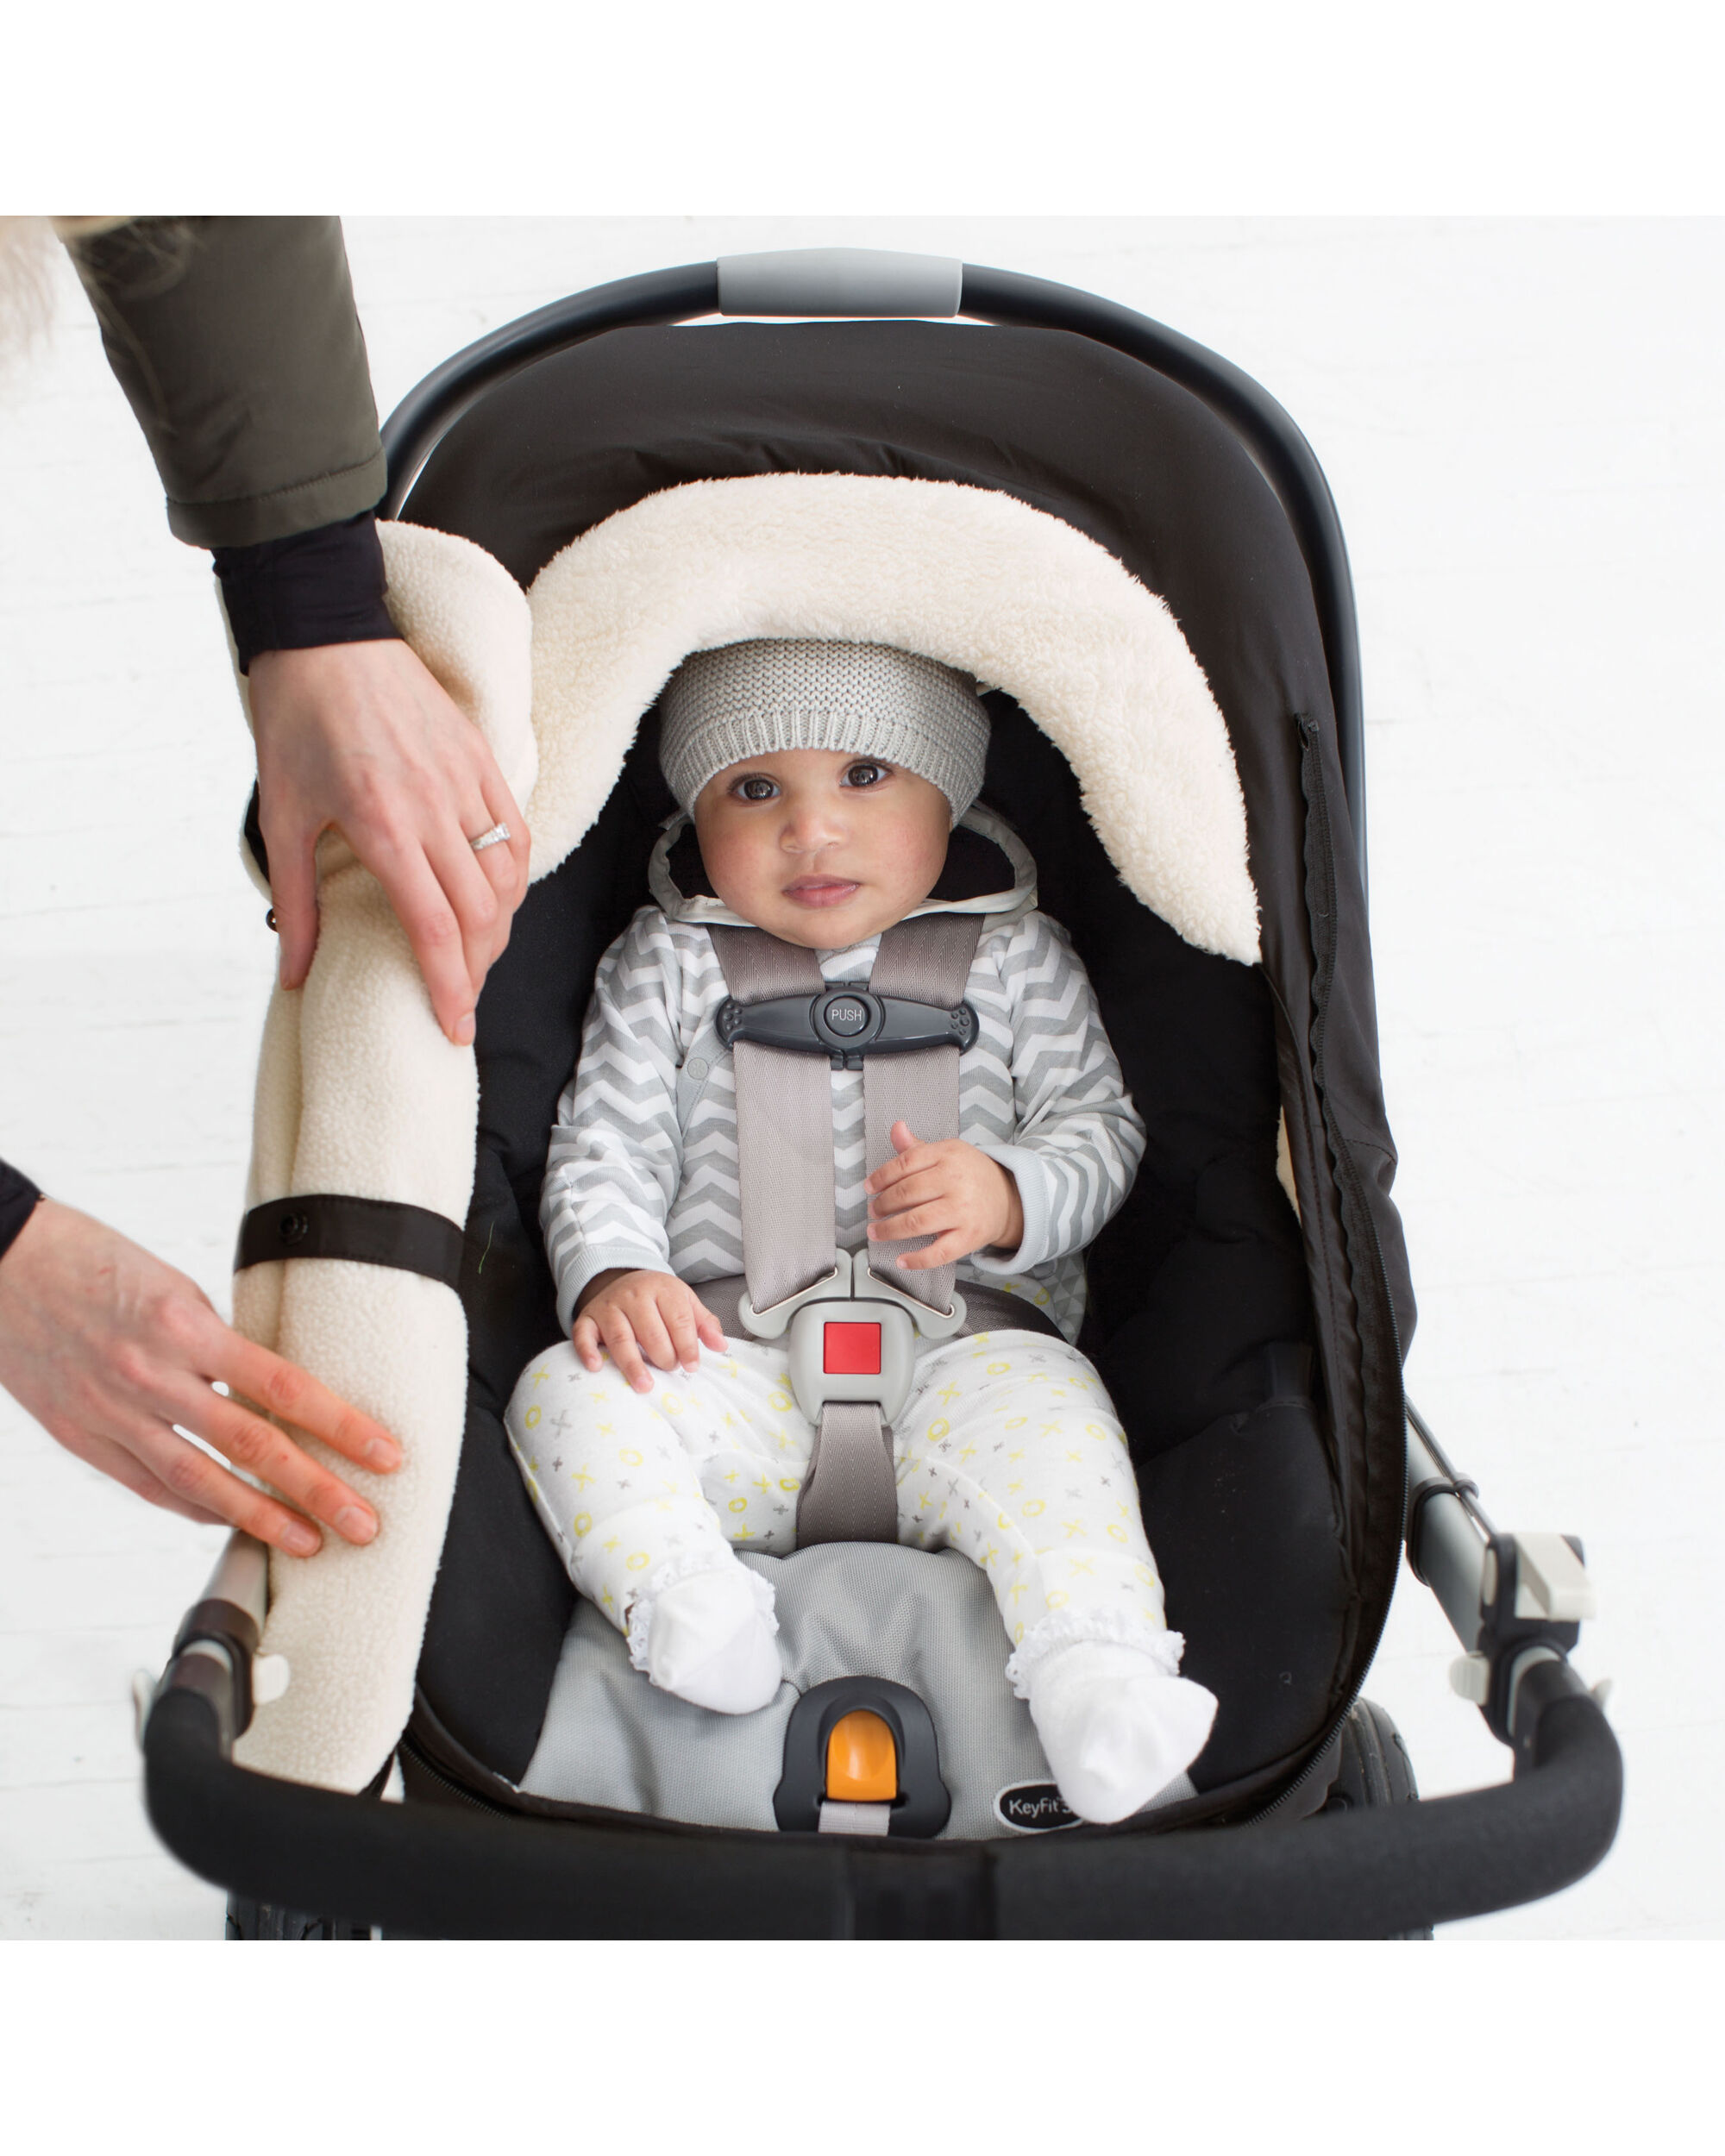 STROLL & GO Car Seat Cover | Skiphop.com